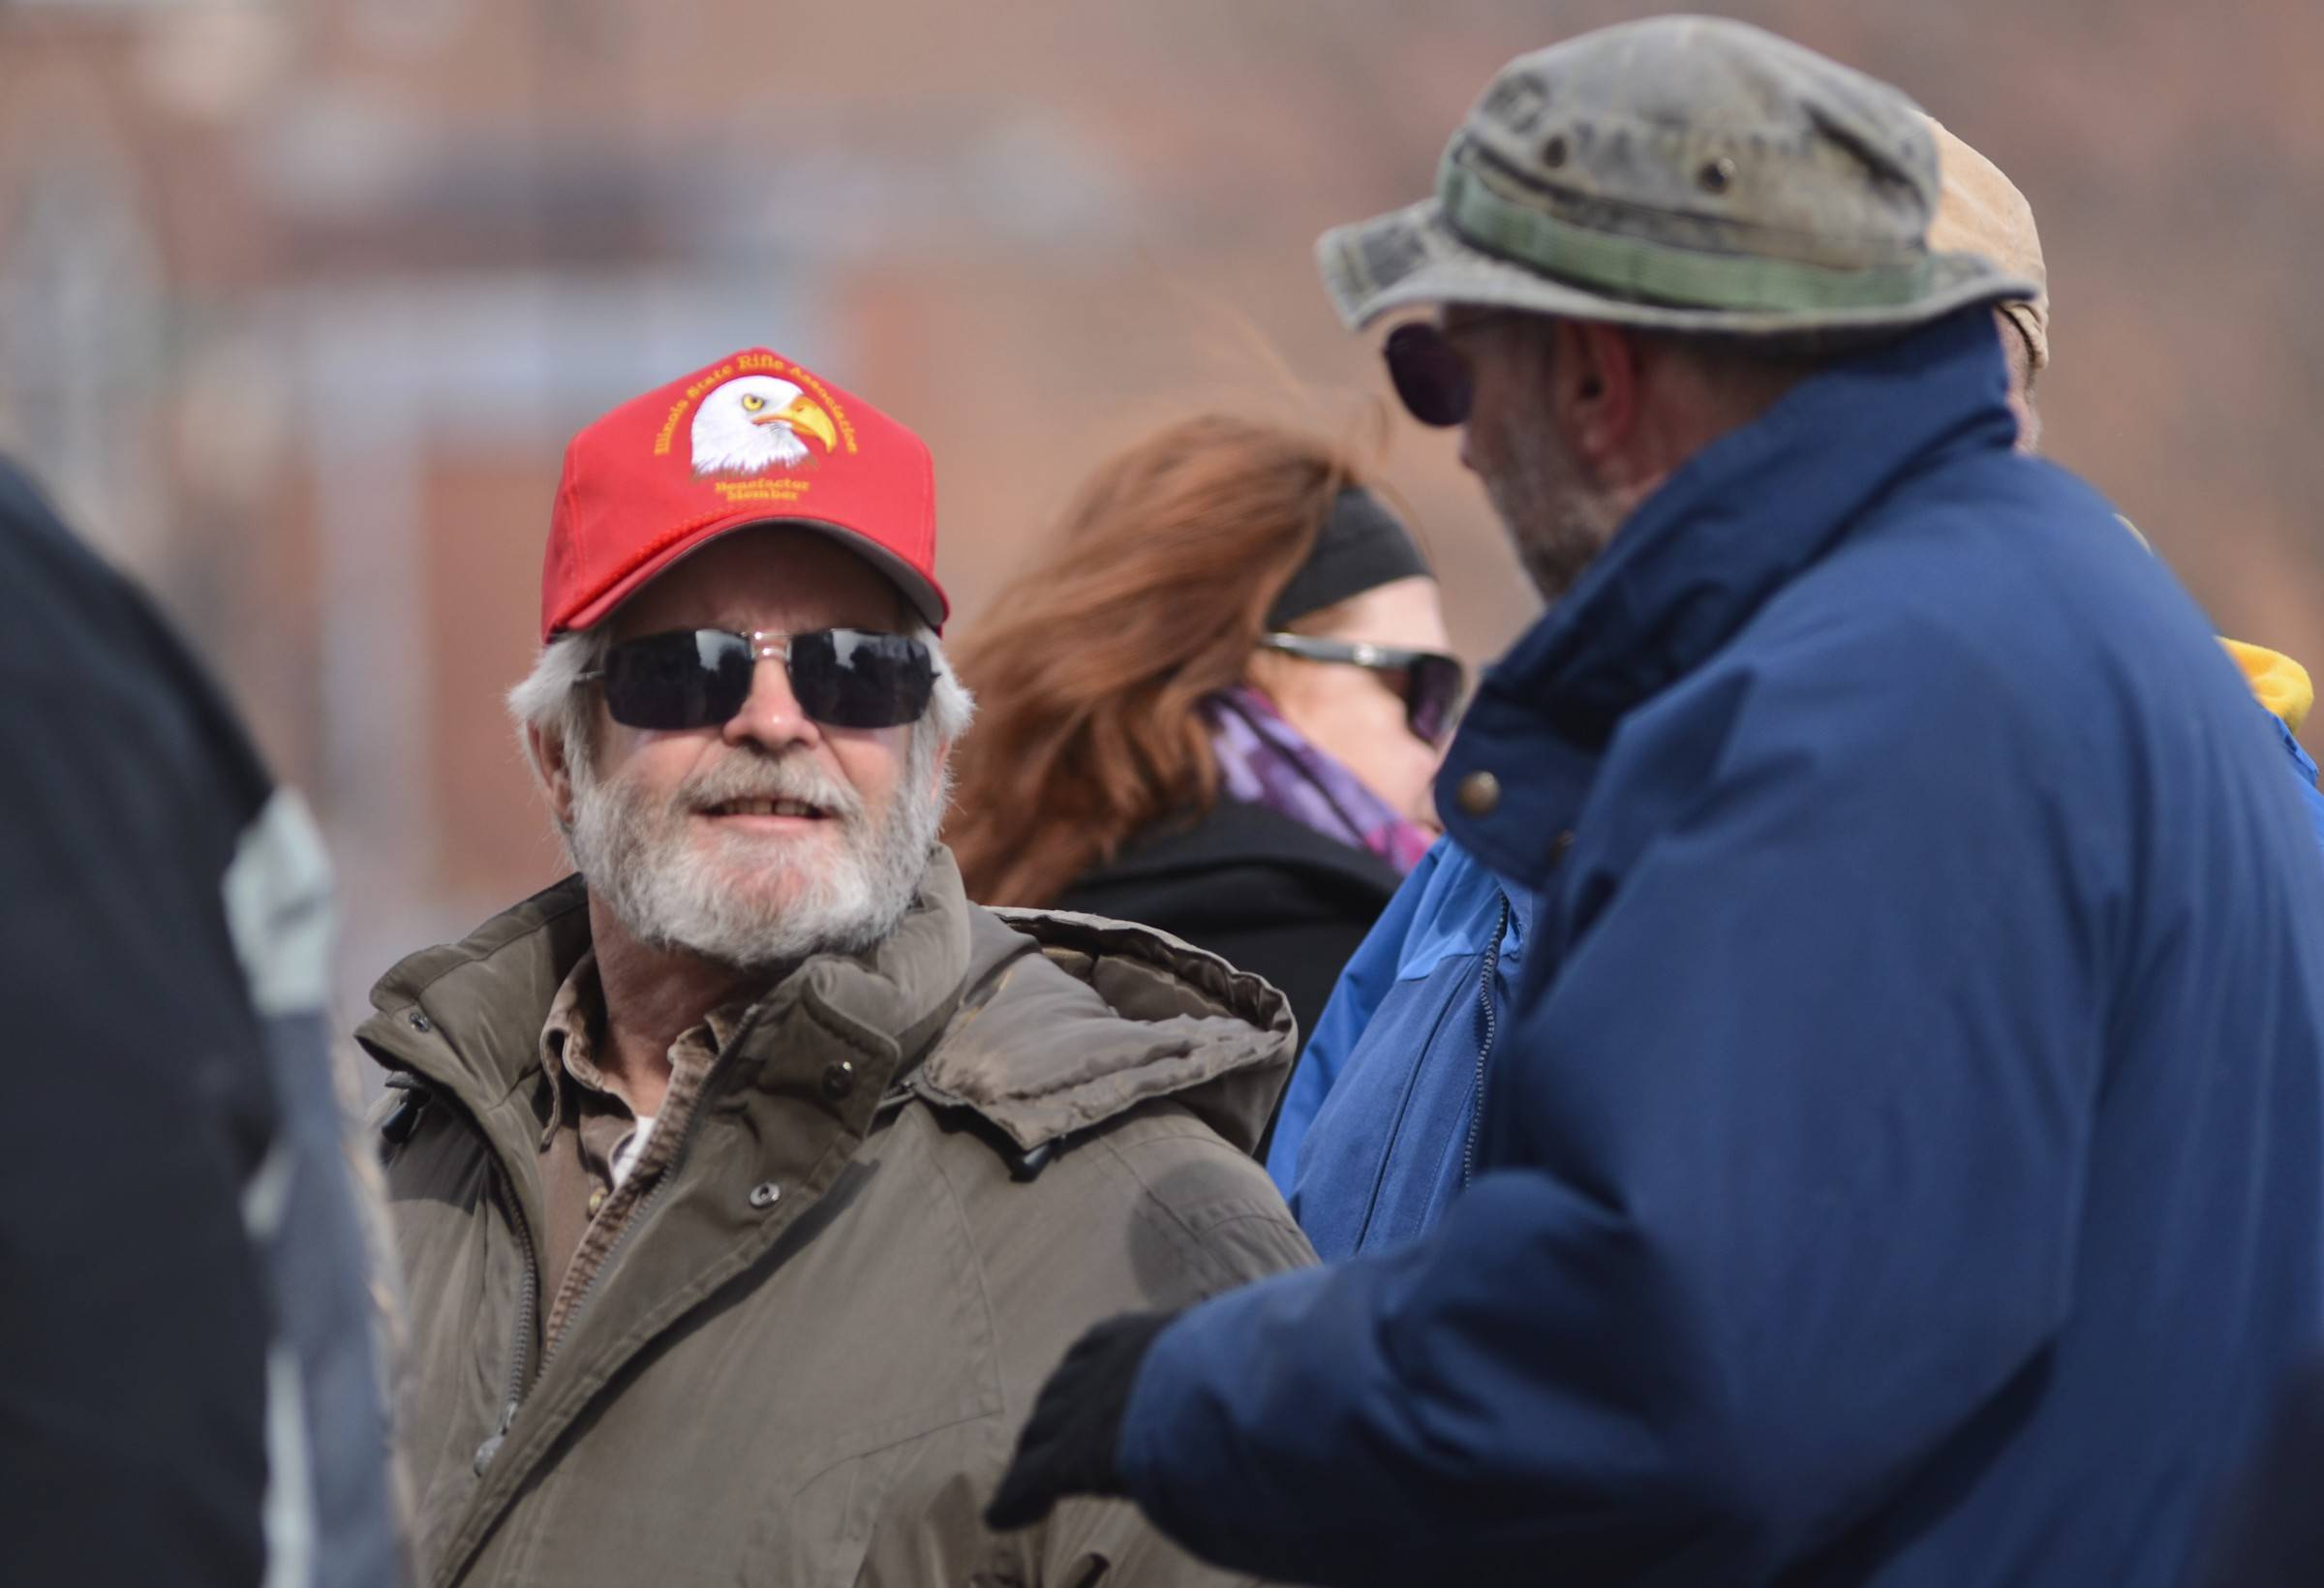 Tom Mishler, 65, left, of Woodstock listens to Mark Gampl, 54, of McHenry as they wait to enter the Illinois Capitol Wednesday.